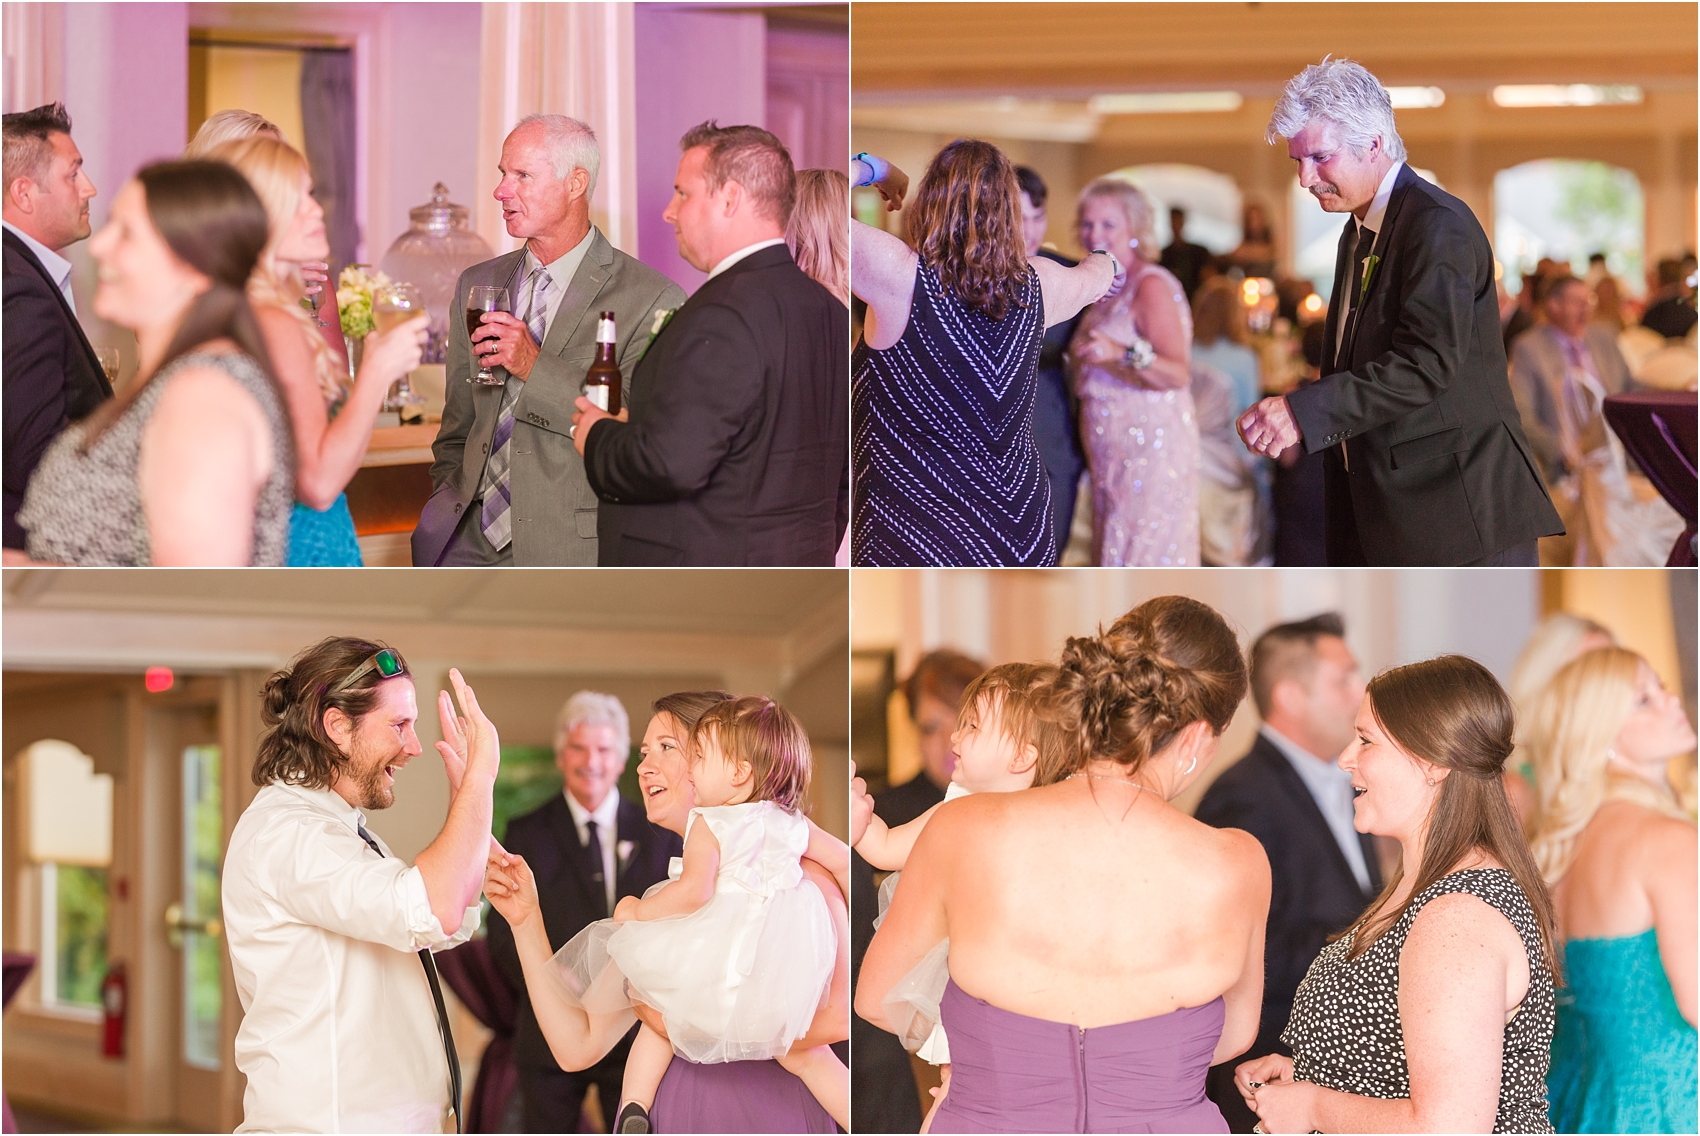 classic-wedding-photos-at-great-oaks-country-club-in-rochester-hills-mi-by-courtney-carolyn-photography_0118.jpg